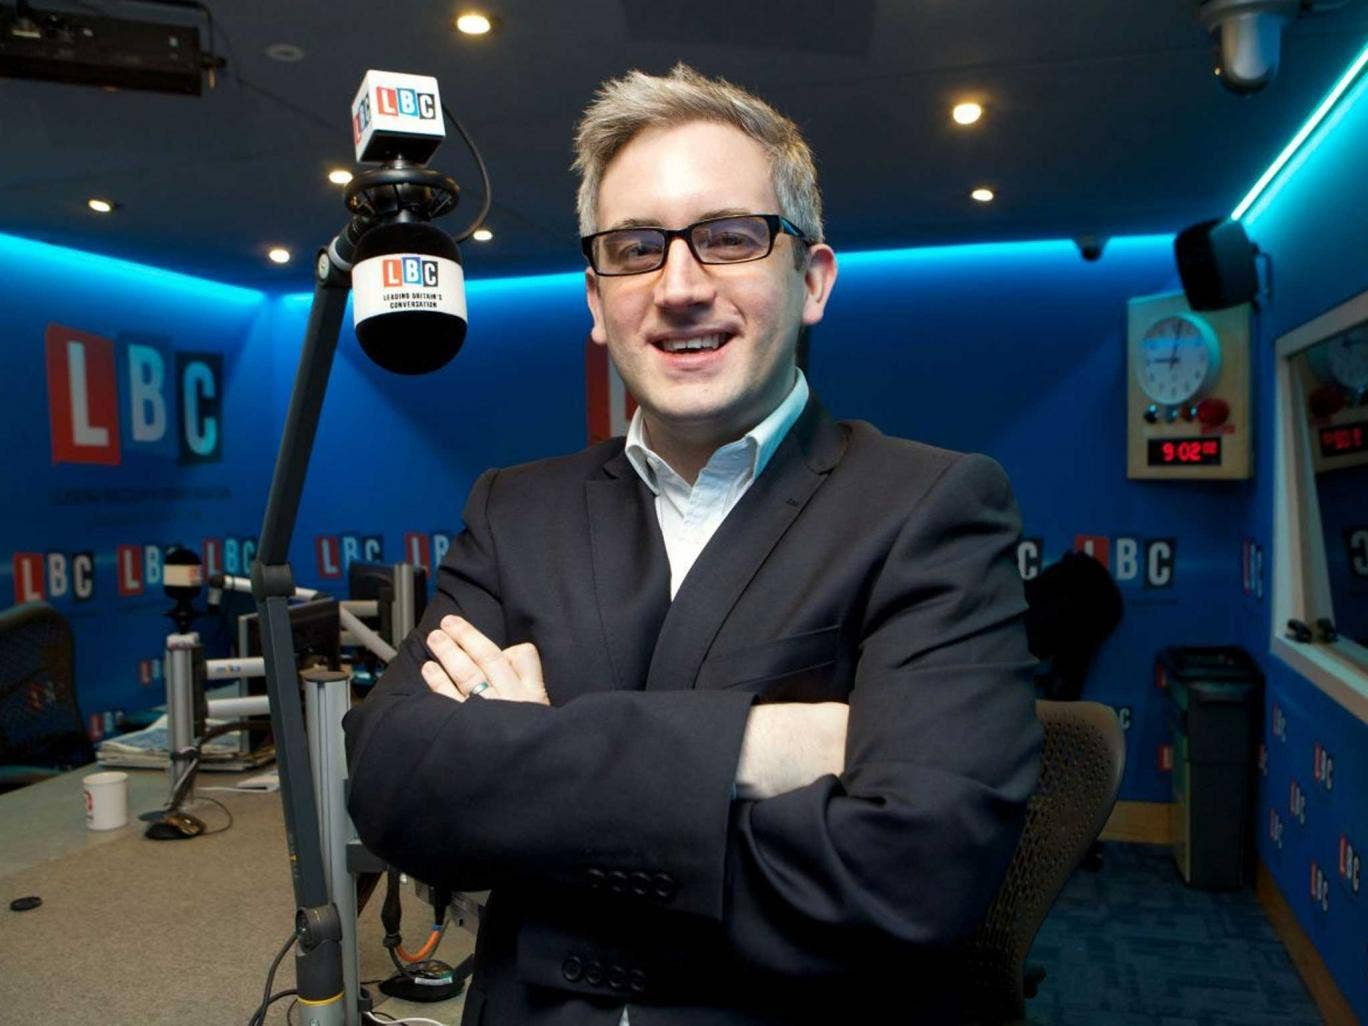 Tuned in: LBC's managing director James Rea: 'We don't give politicians a free ride'